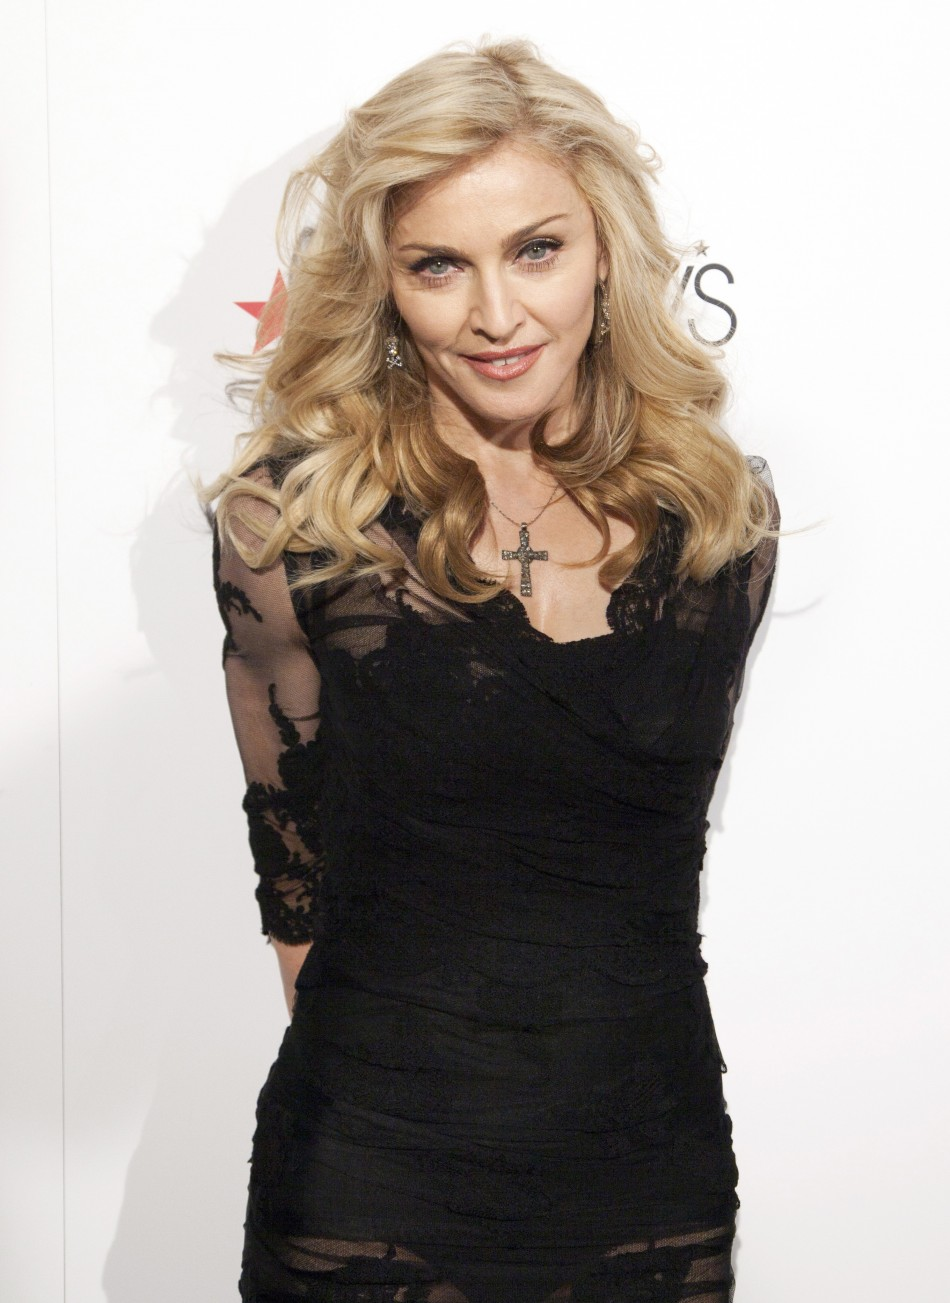 262428-madonna-at-the-launch-of-her-perfume-truth-or-dare.jpg